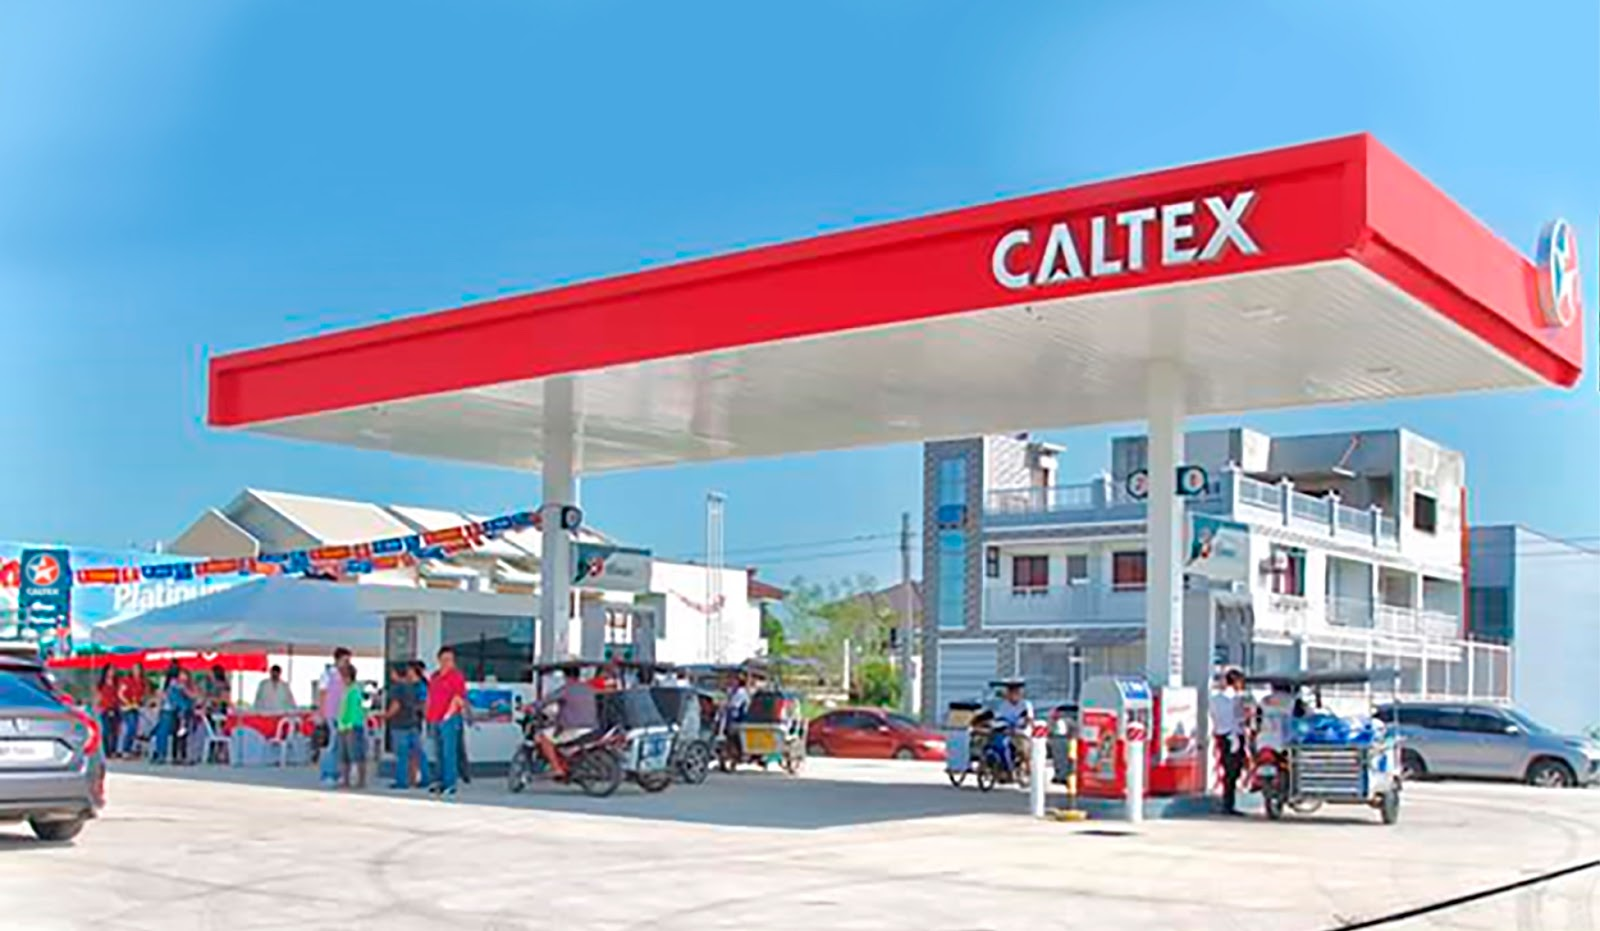 Caltex continues to build retail muscle